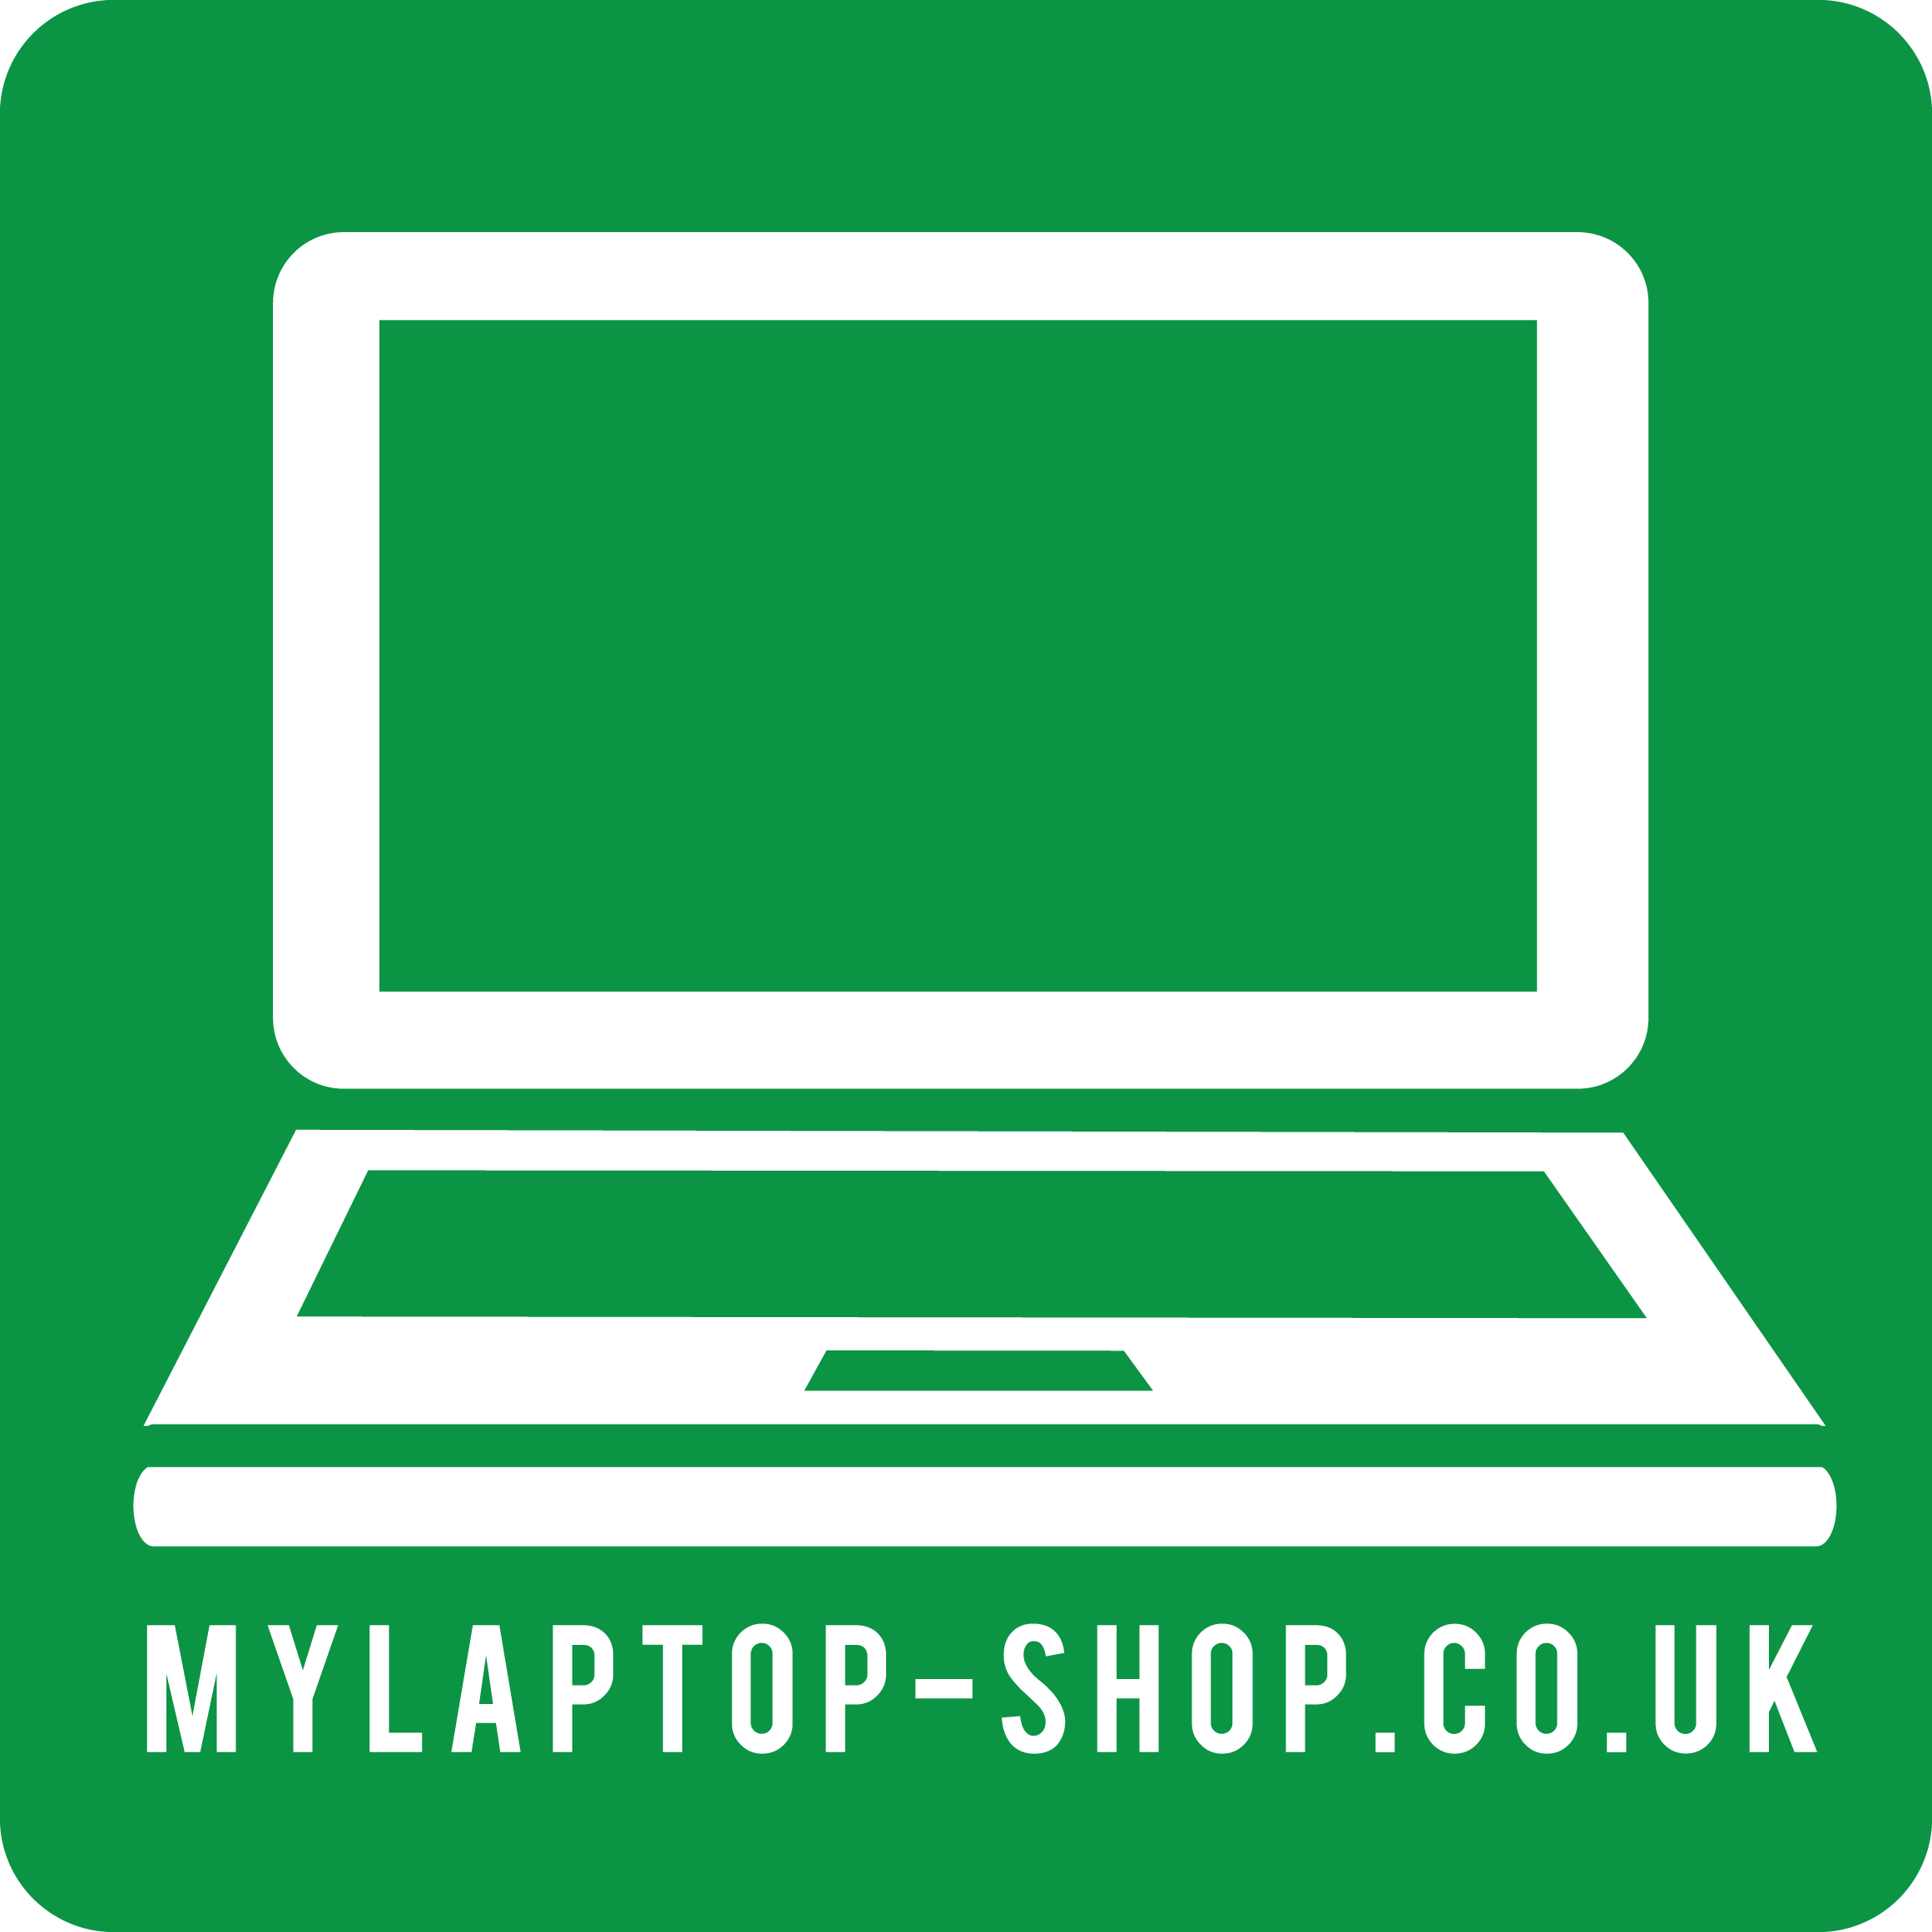 mylaptop-shop.co.uk